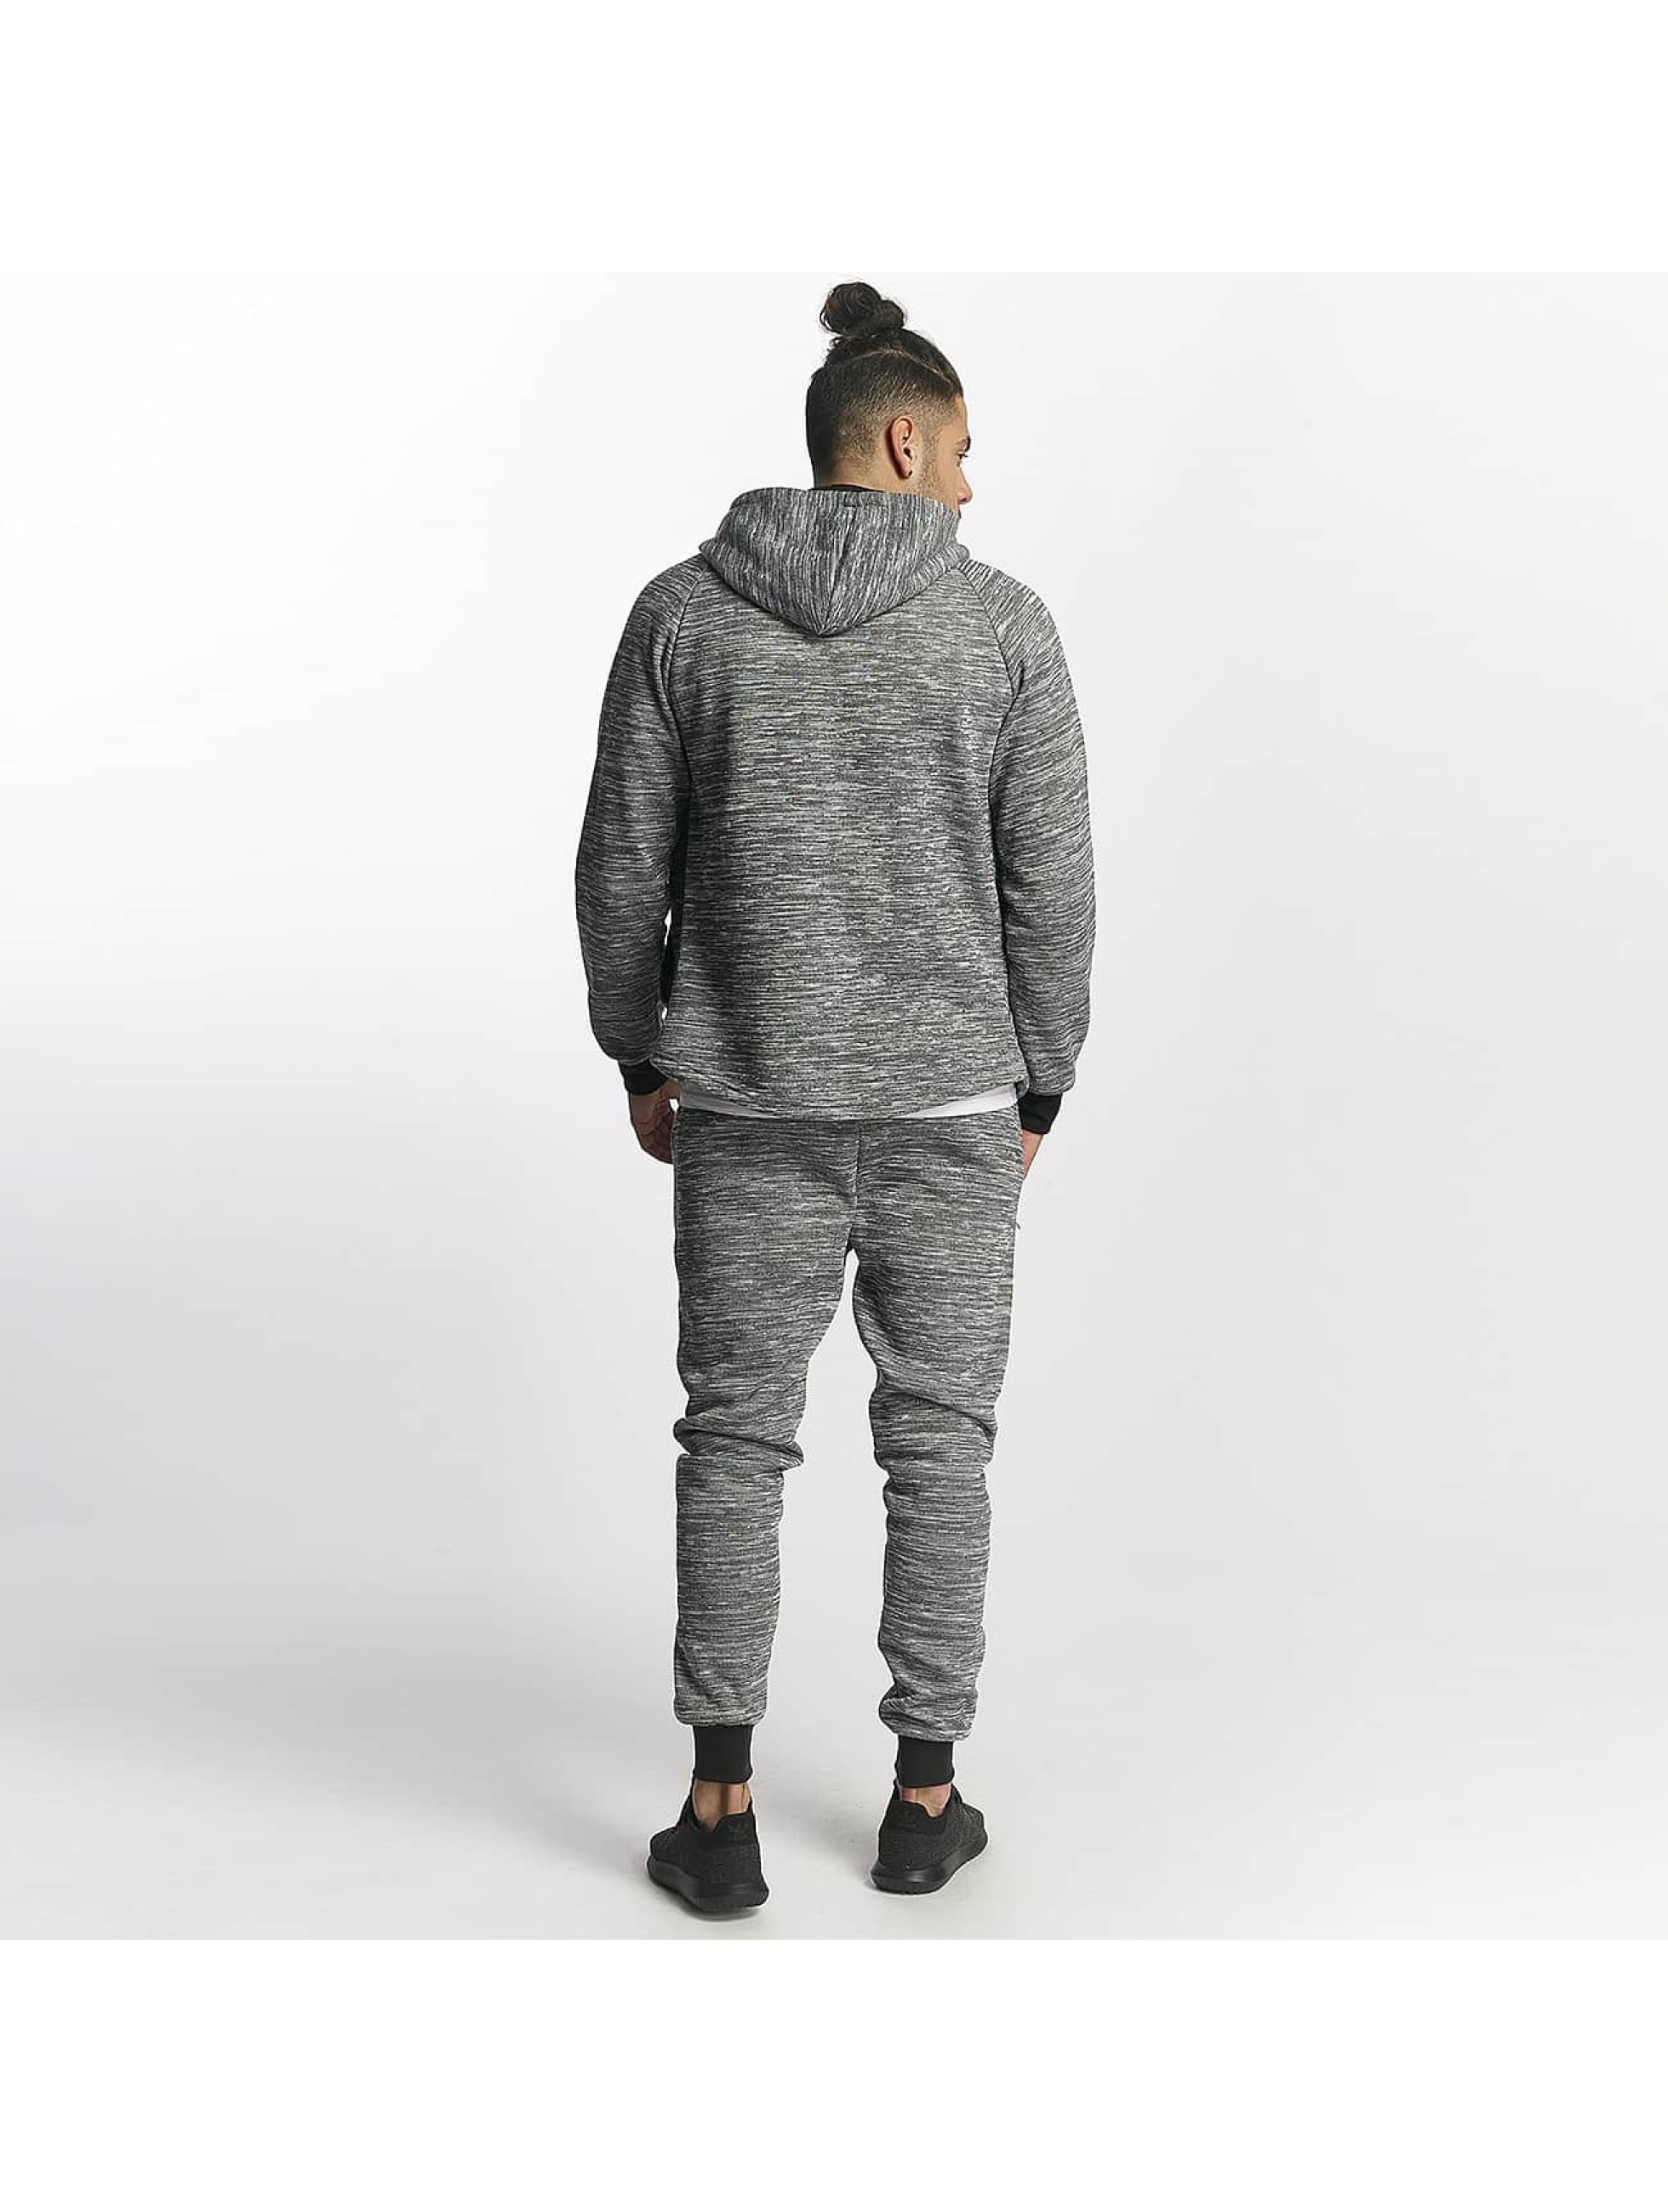 Aarhon Ensemble & Survêtement Aarhon Sweat Suit gris